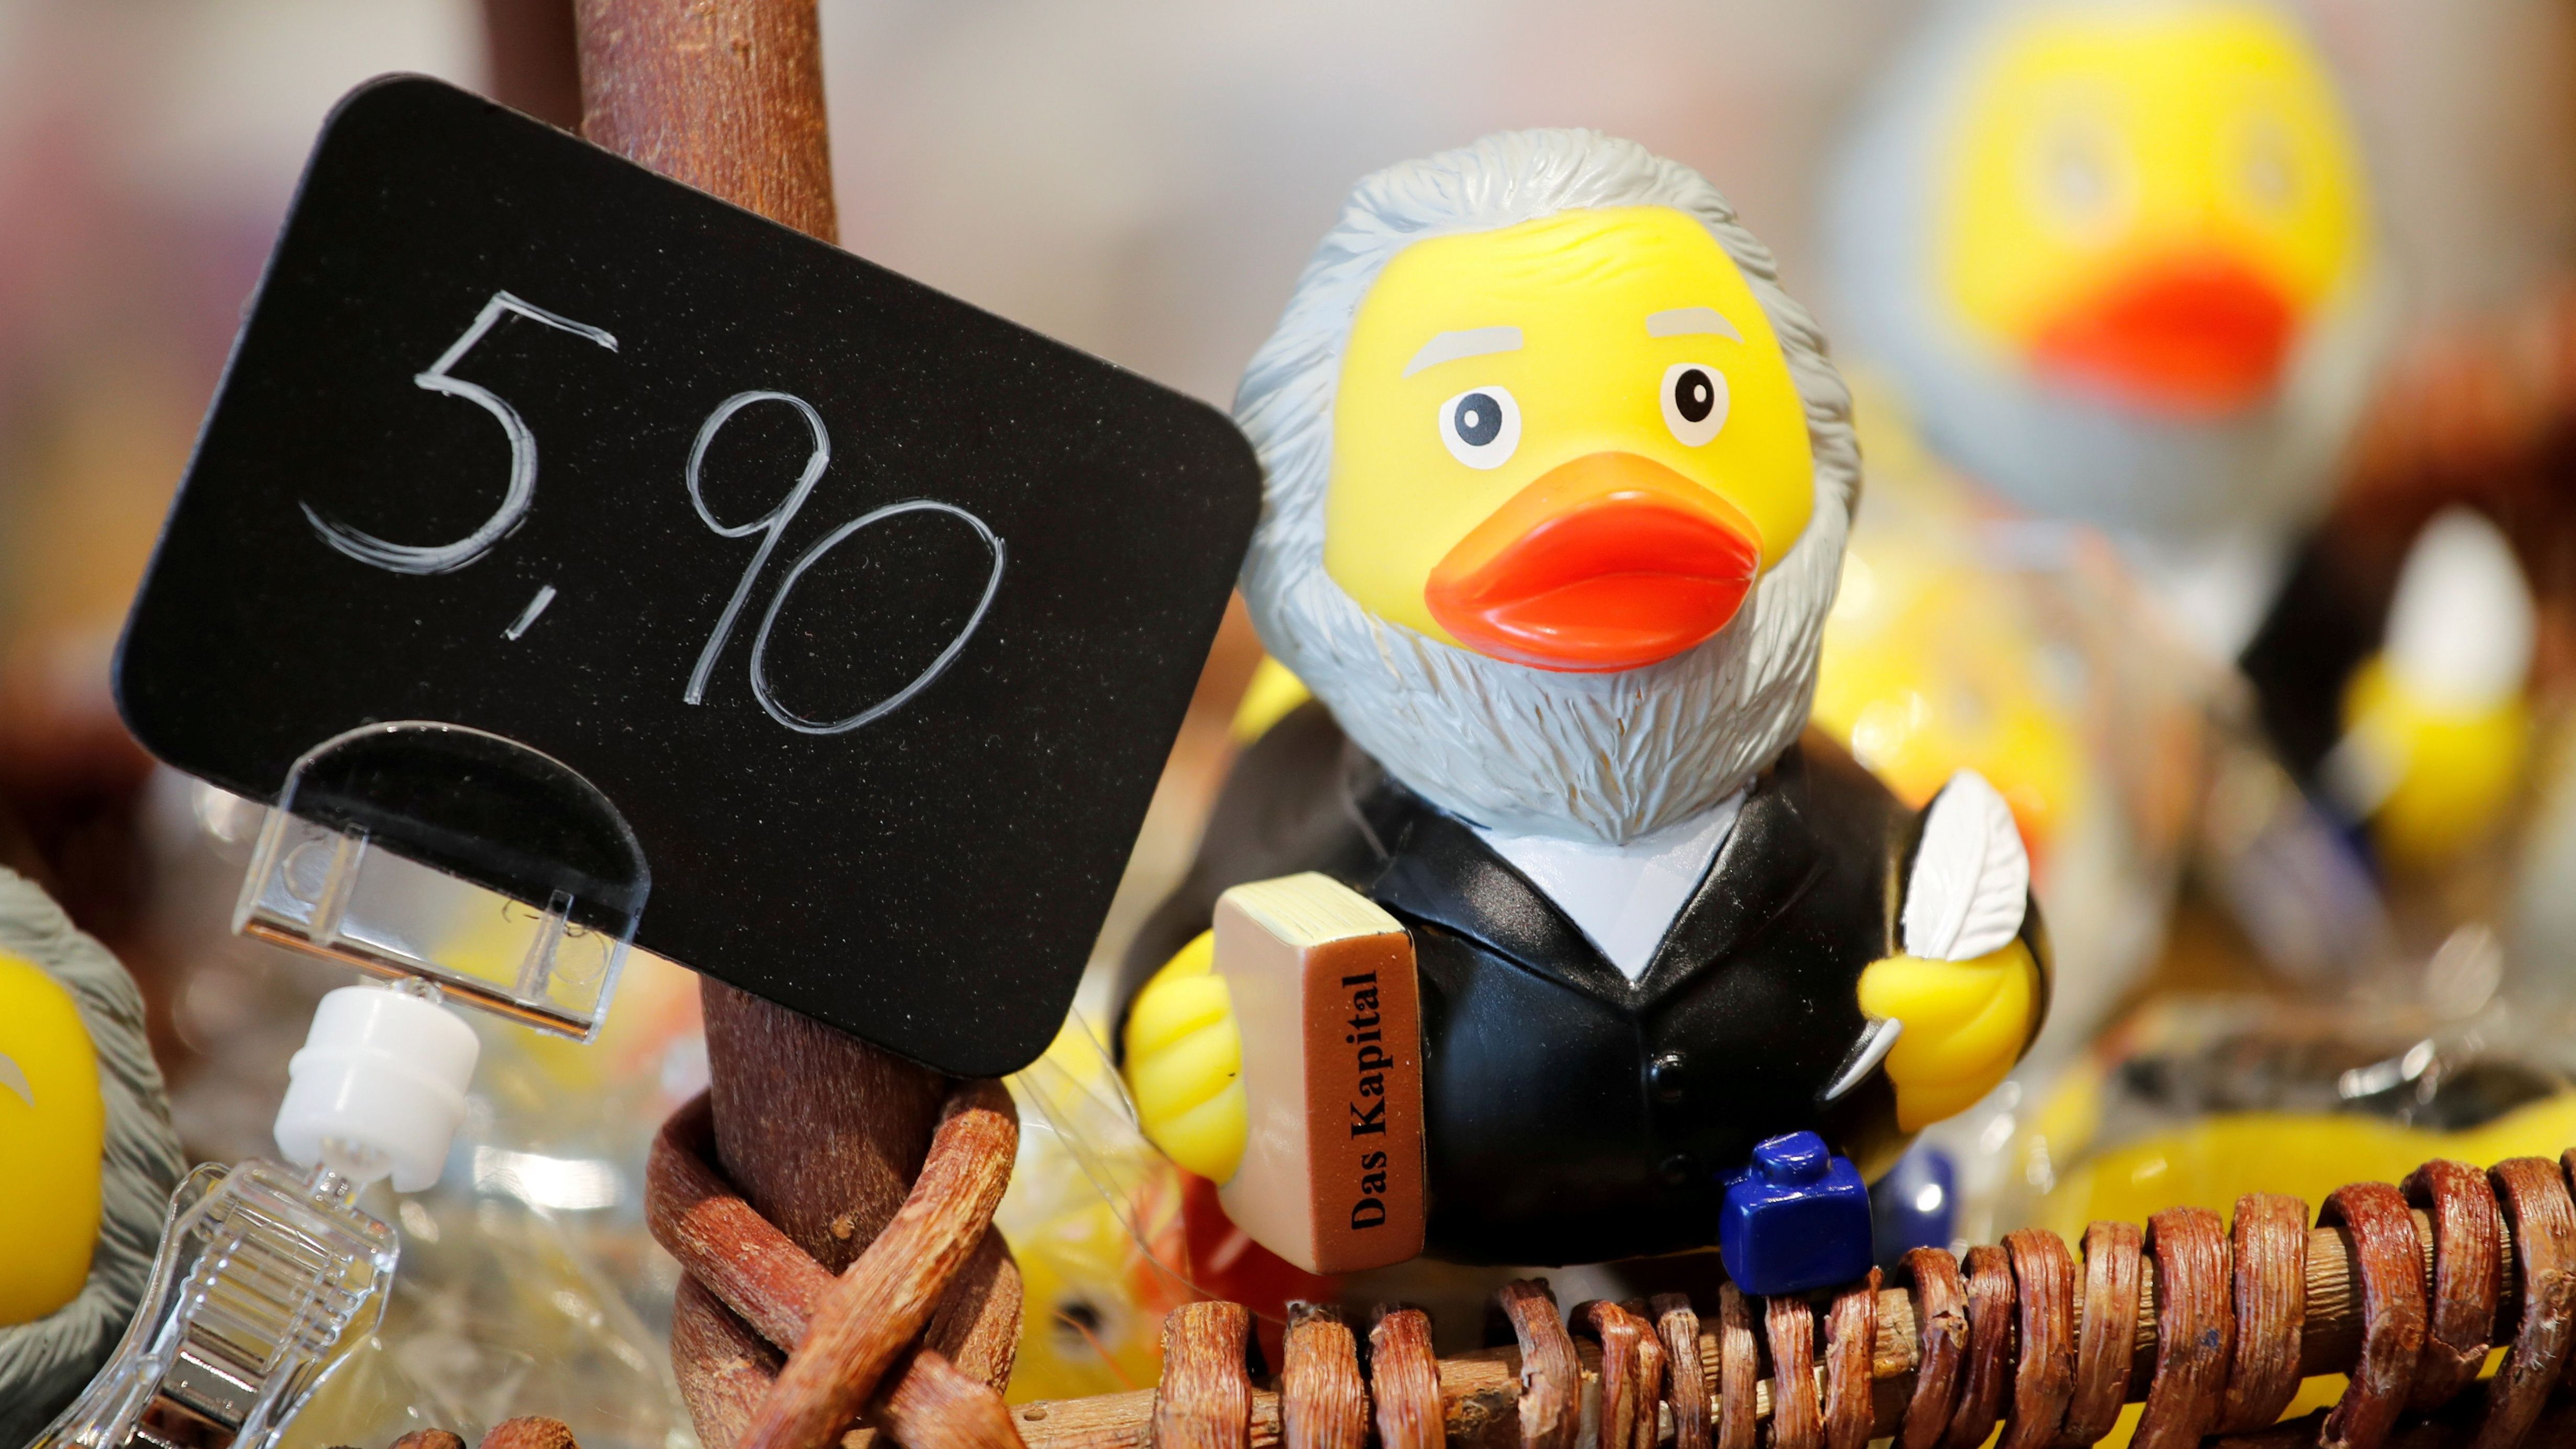 A rubber duck depicting German philosopher Karl Marx is for sale in his hometown of Trier, Germany.